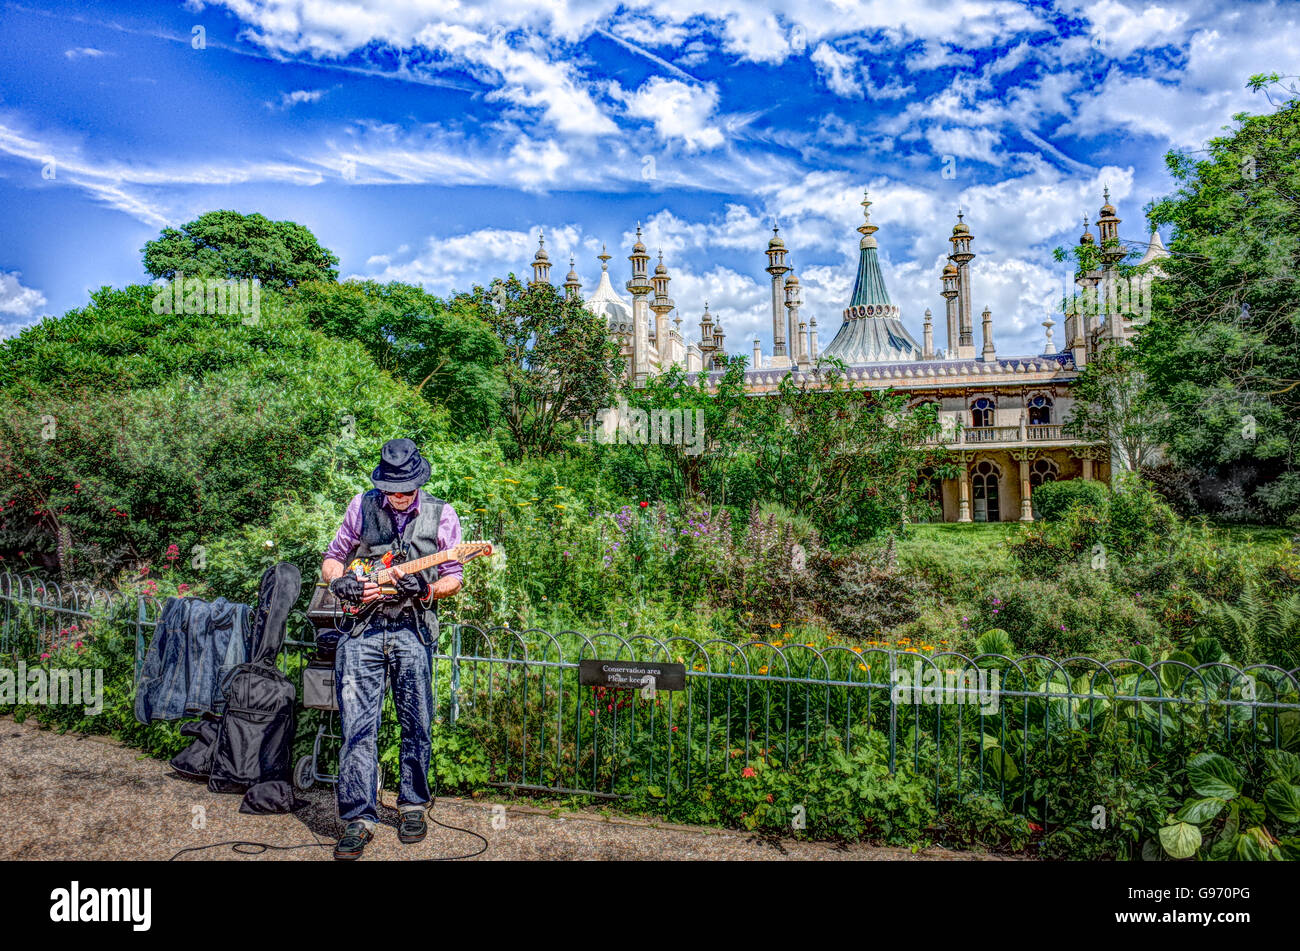 Busker Brighton Stock Photos & Busker Brighton Stock Images - Alamy